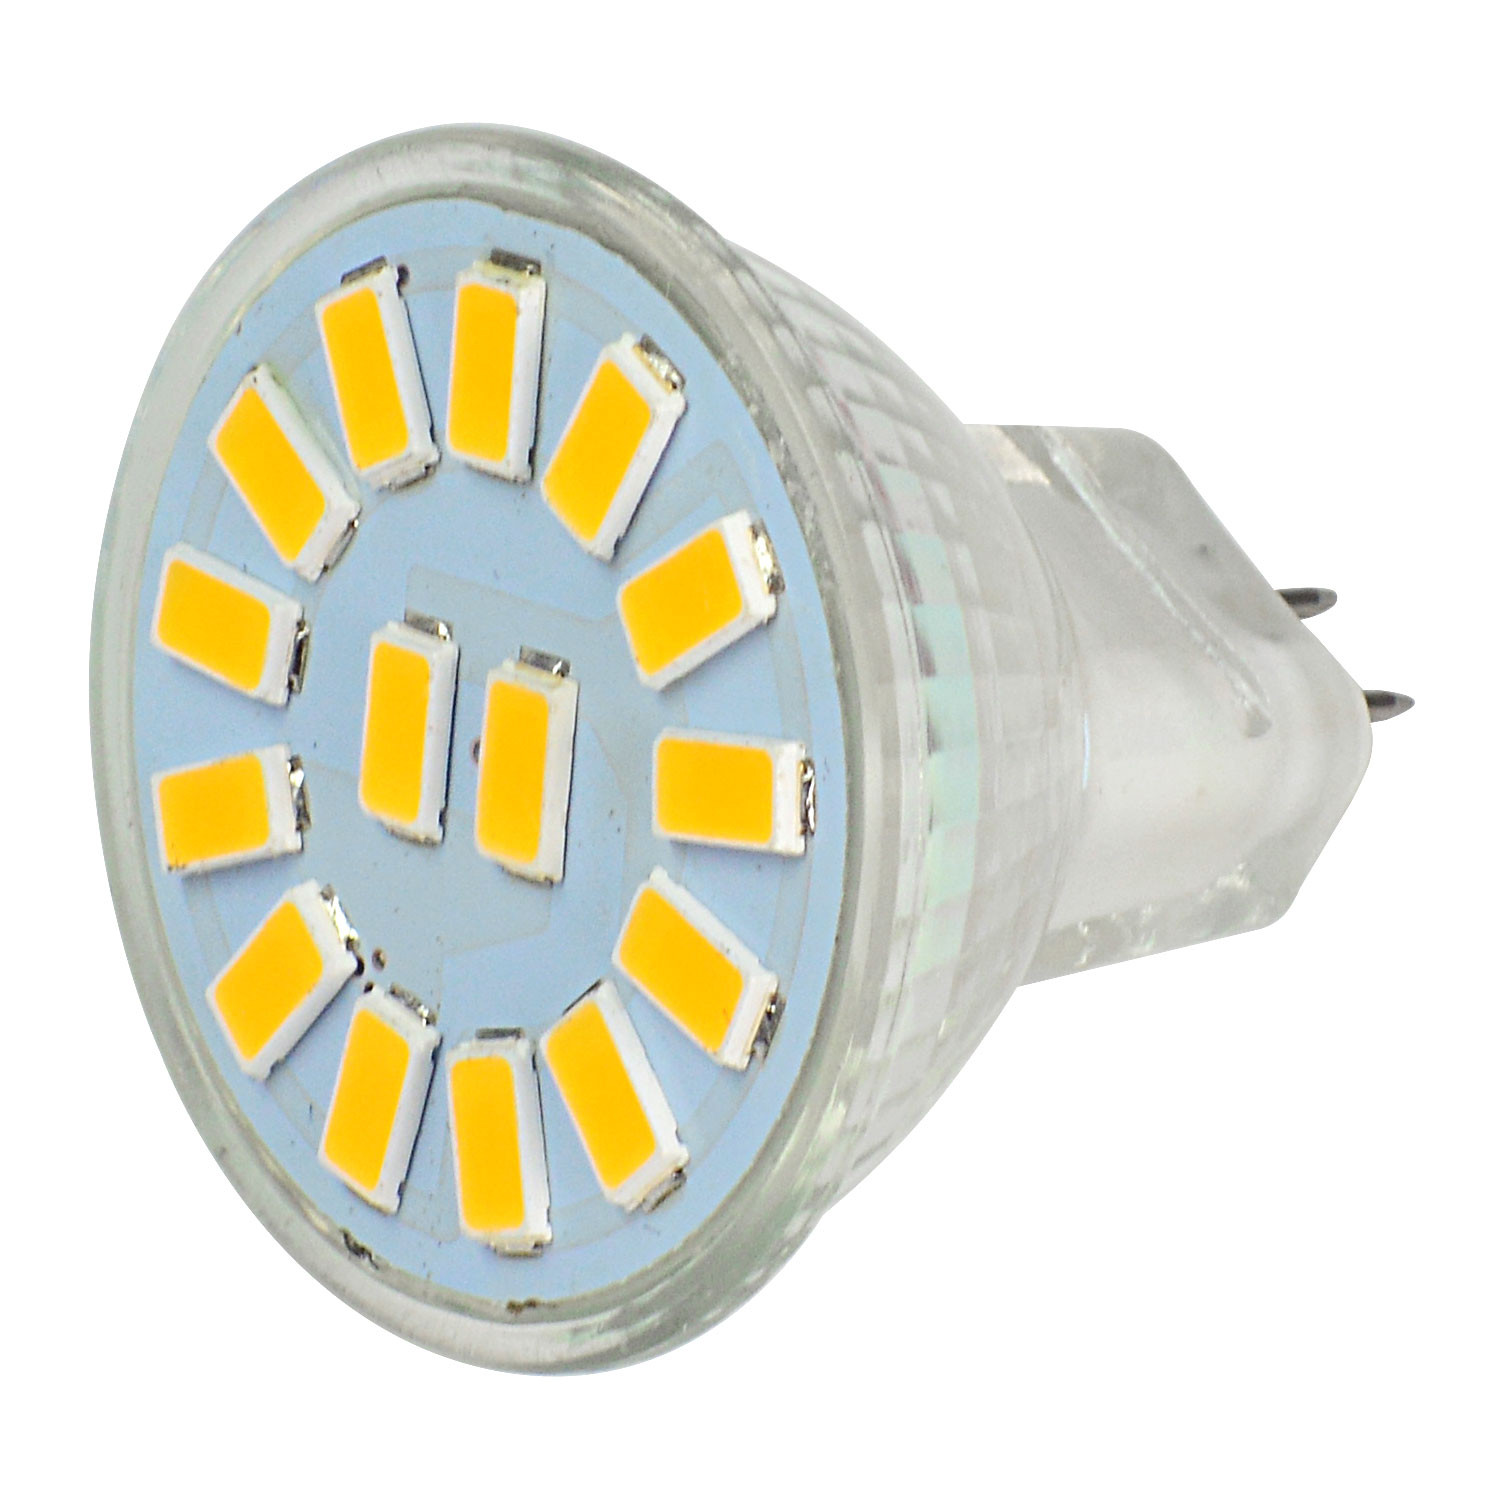 MENGS® MR11 4W LED Light 15x 5733 SMD LED Bulb Lamp AC/DC 12V In Cool White Energy-Saving Light